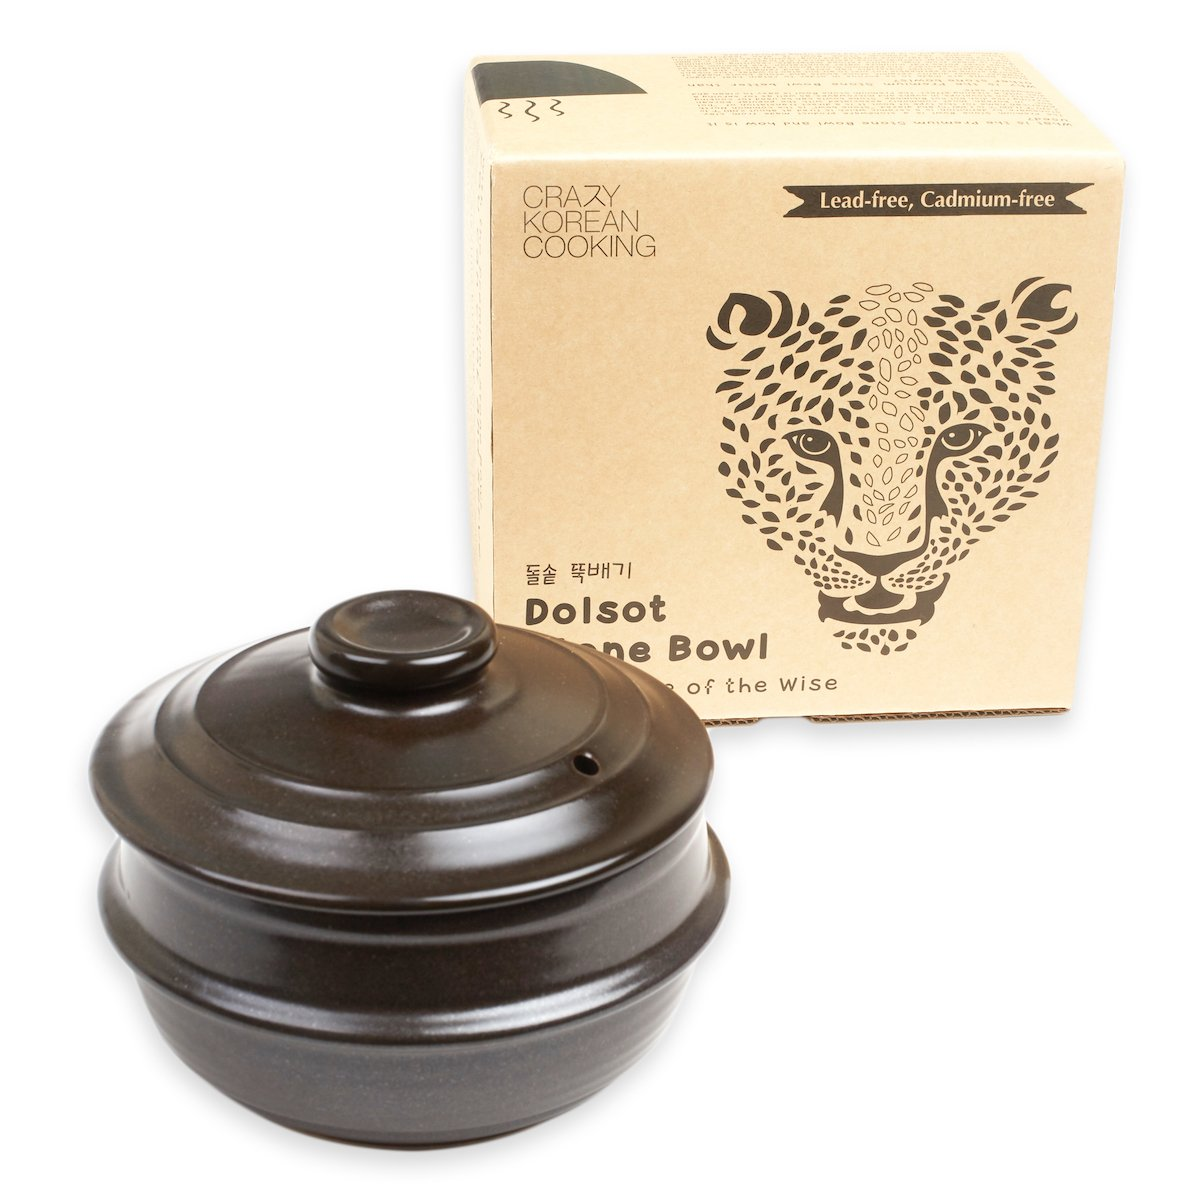 Tiger Dolsot Korean Stone Bowl with Lid (No Trivet) (Size 4) by Crazy Korean Cooking (Image #1)